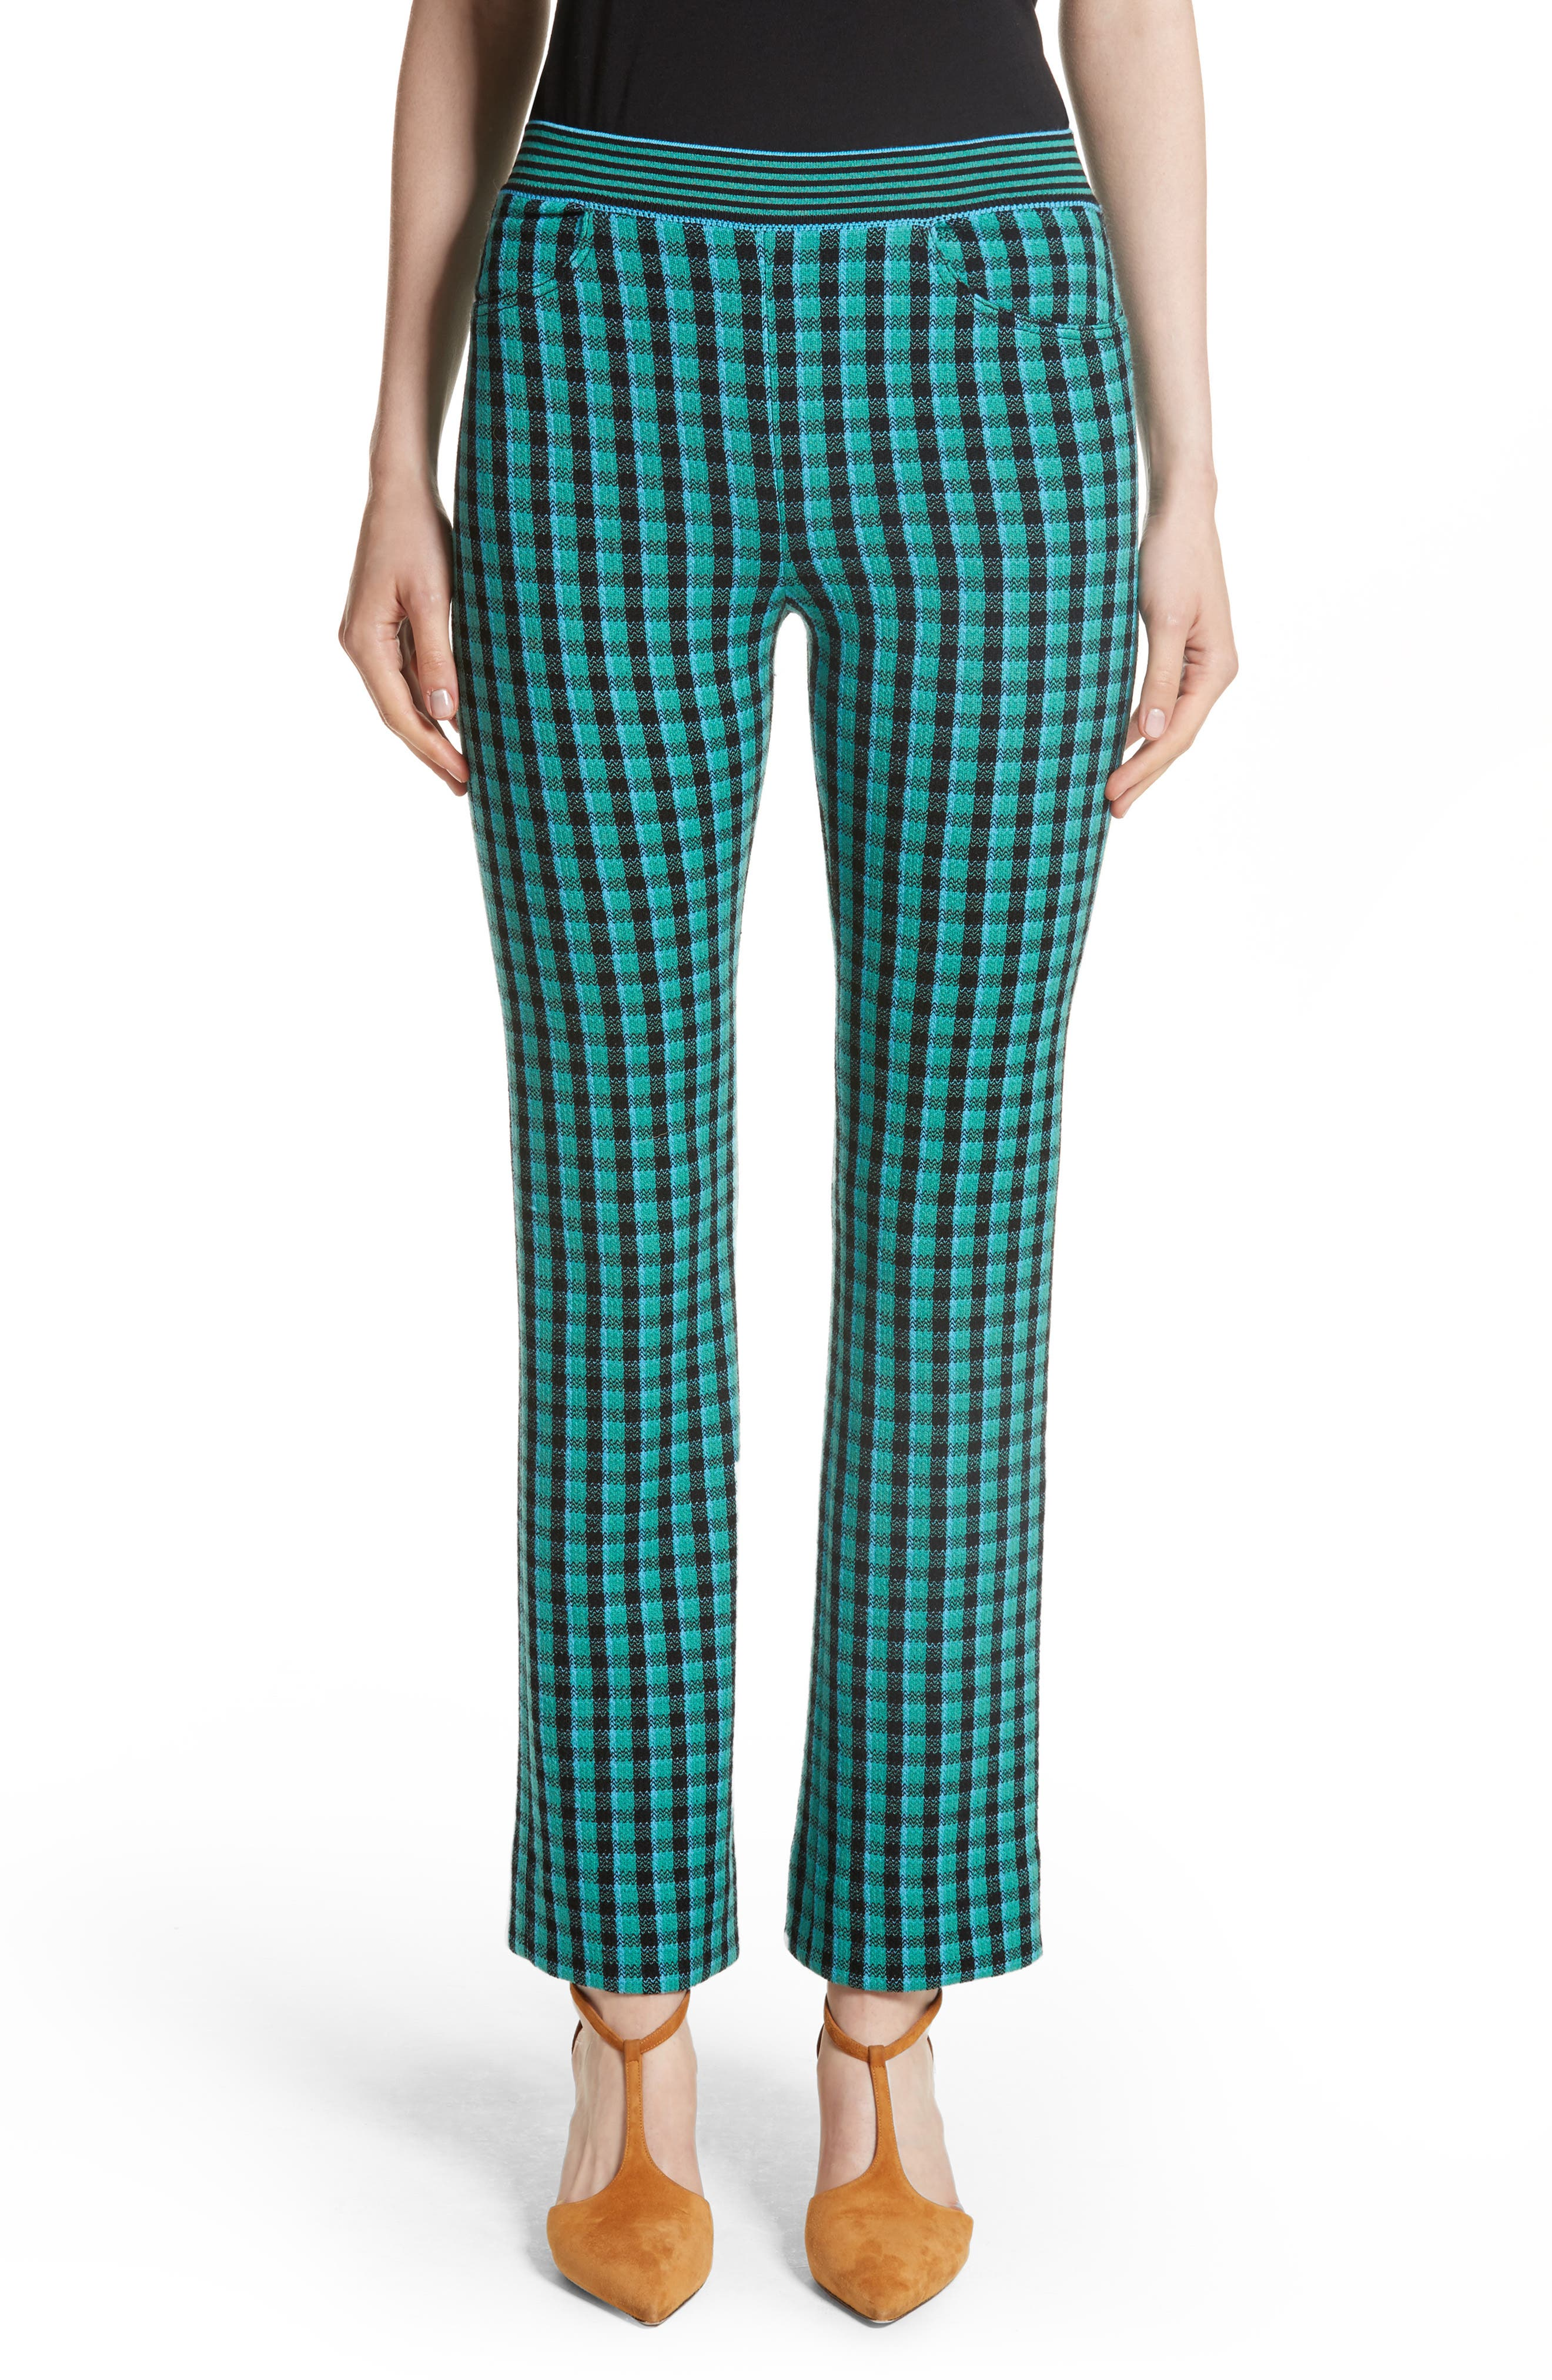 Plaid Stretch Wool Knit Pants,                         Main,                         color, Green/ Blue